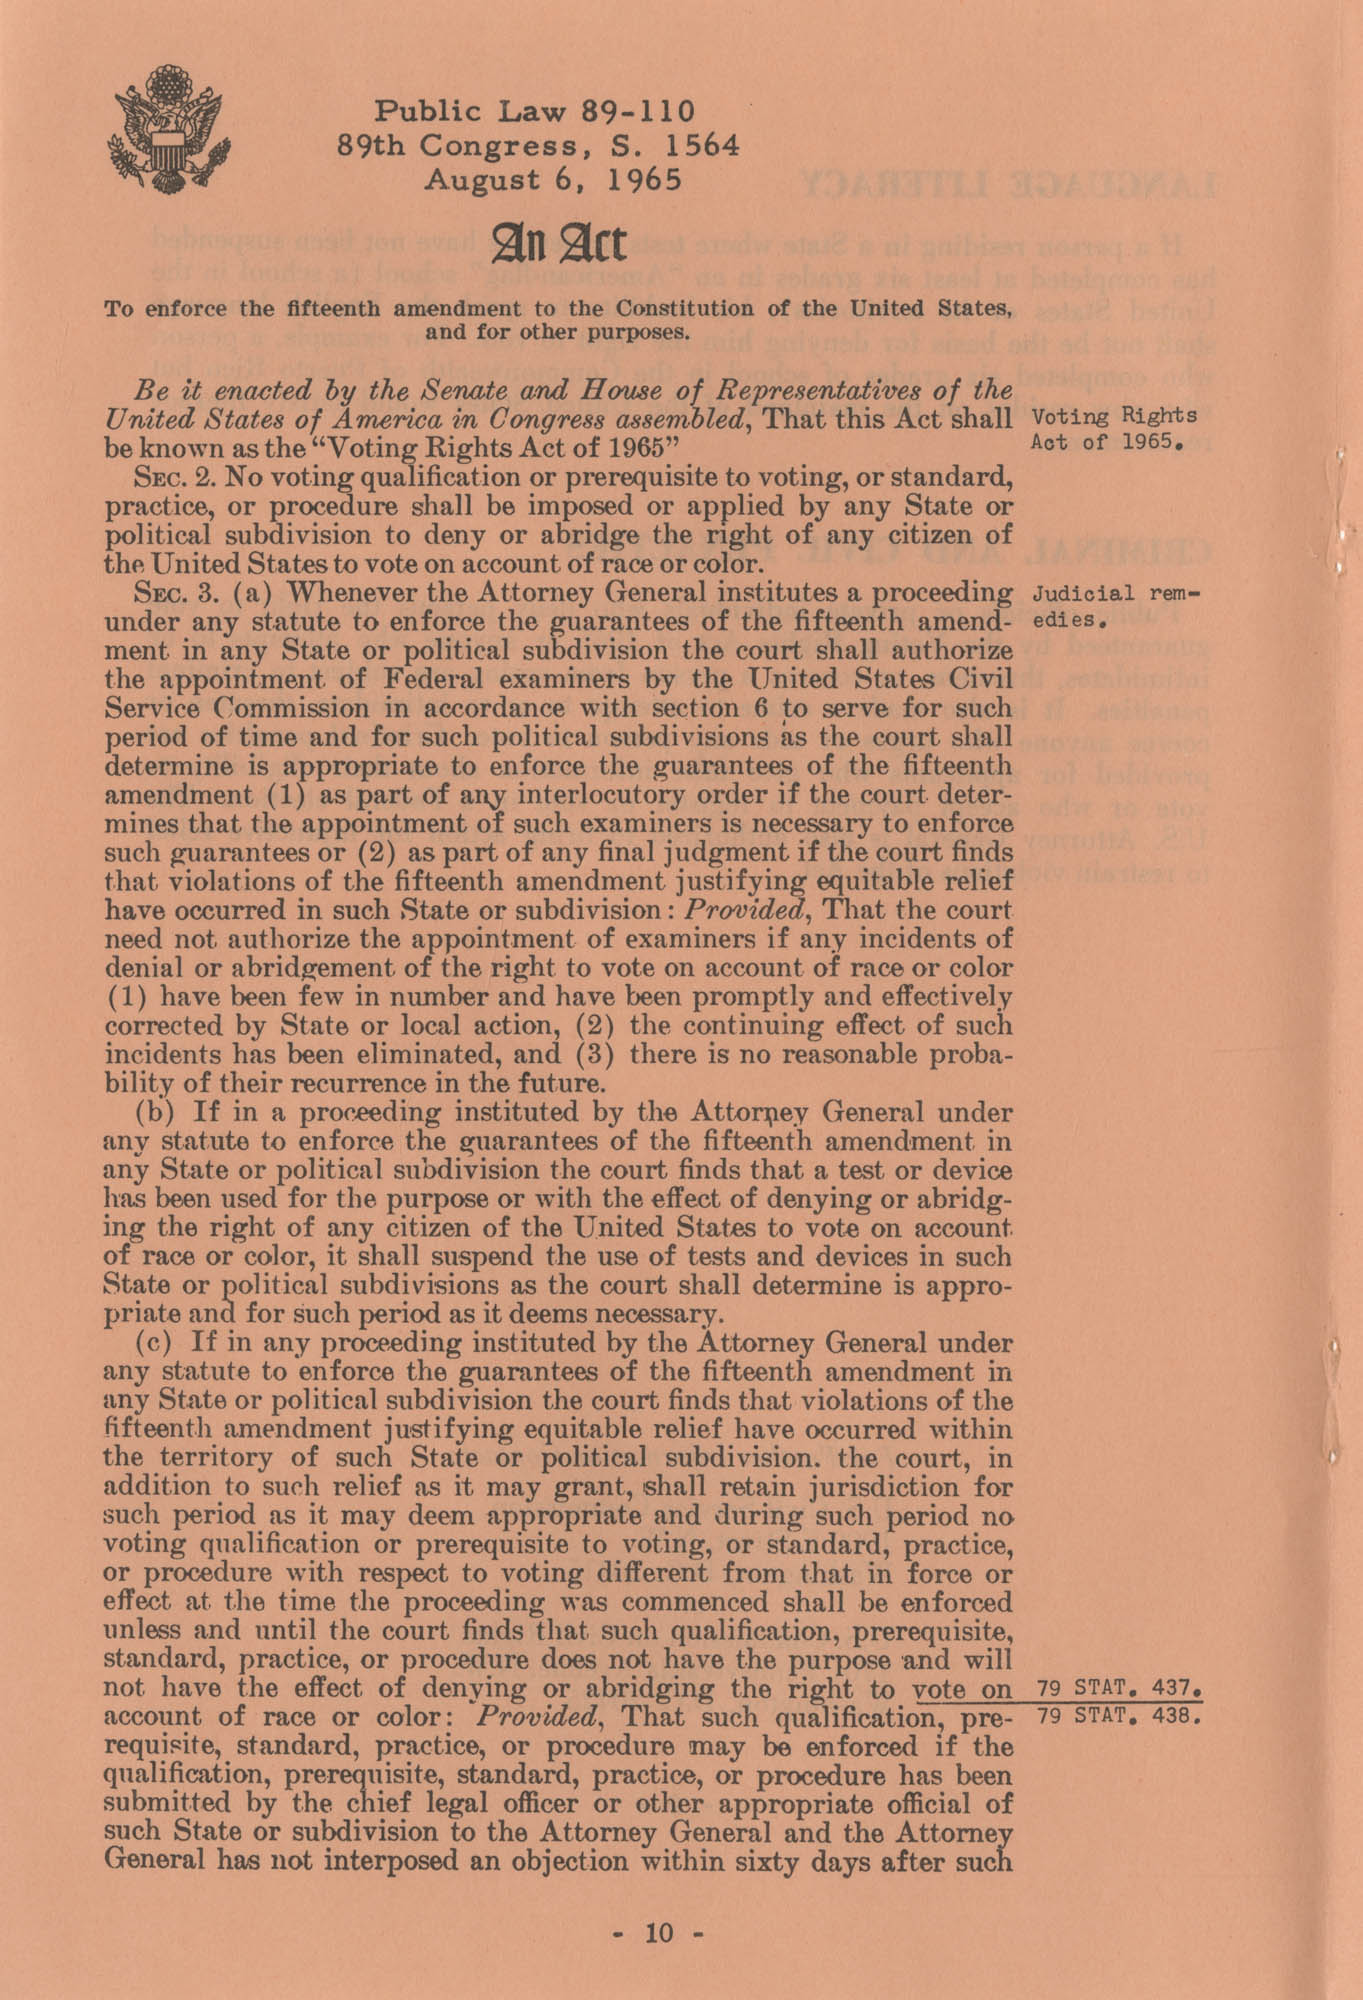 The Voting Rights Act of 1965, Page 10